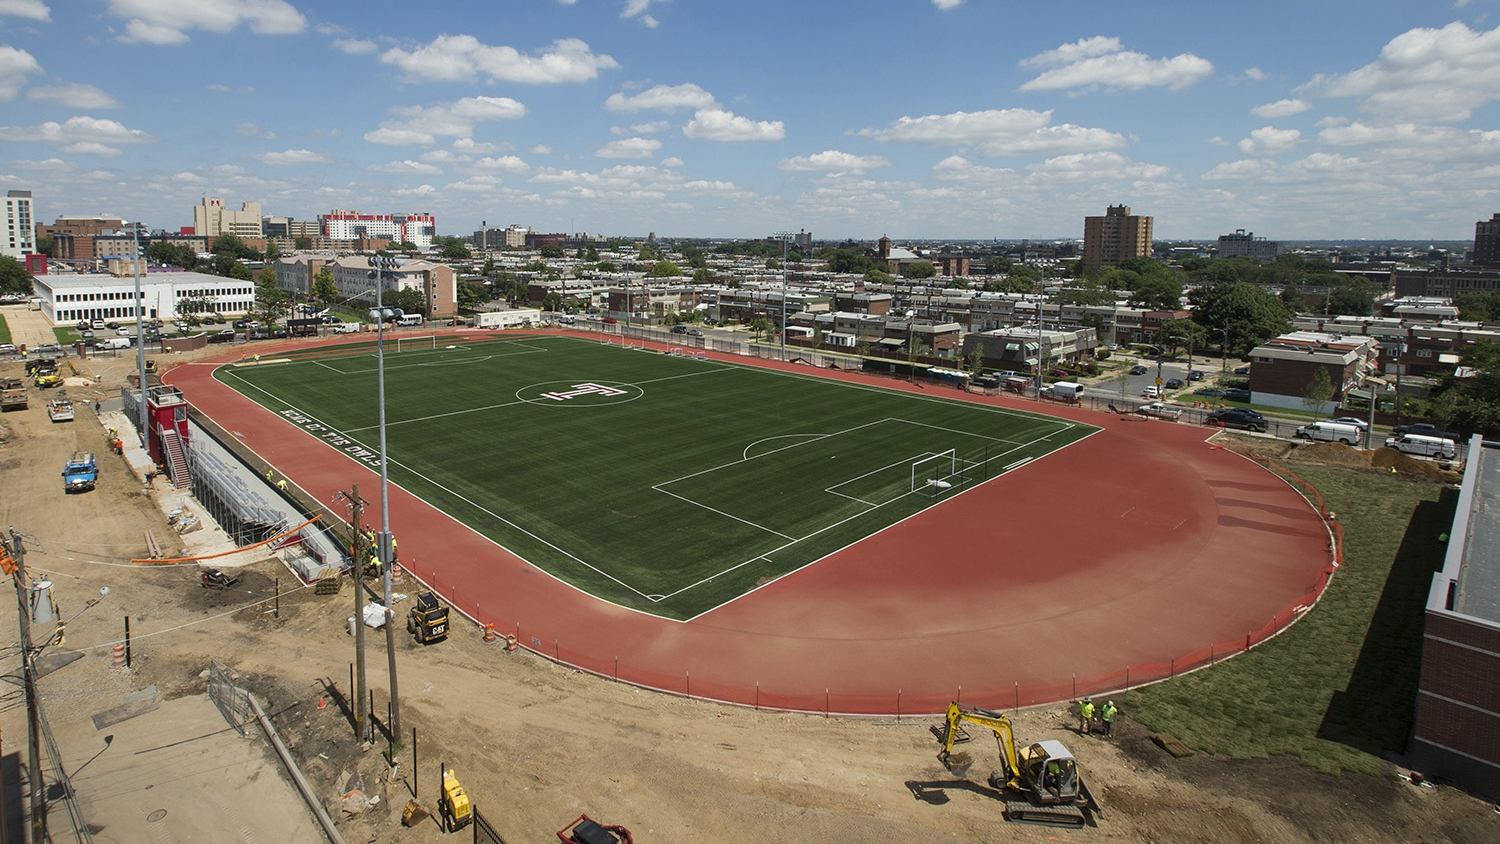 The new running-track and soccer field.